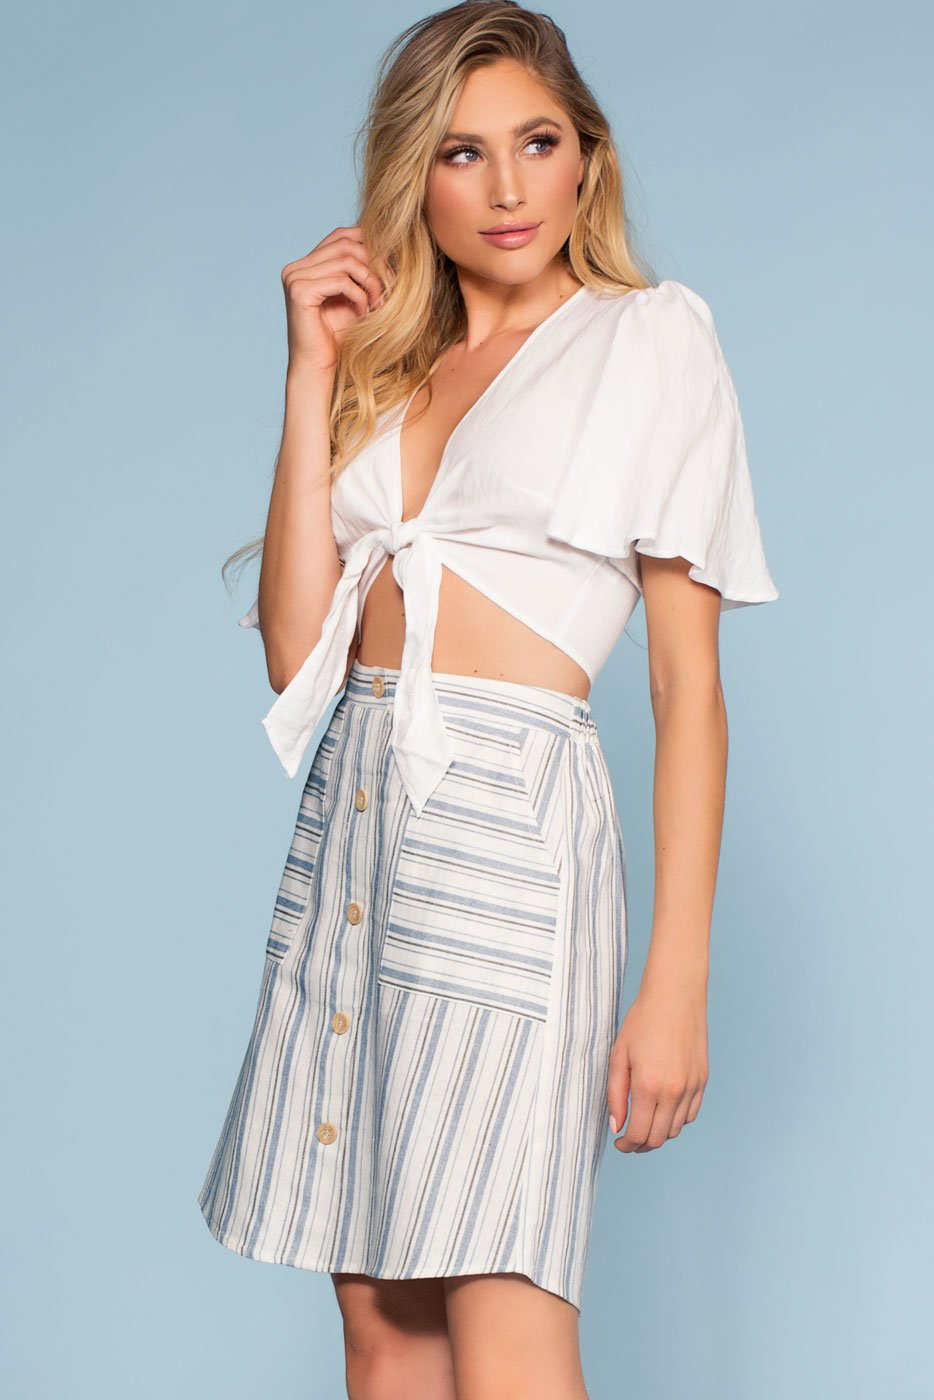 Blue and White Stripe Button-Up Mini Skirt